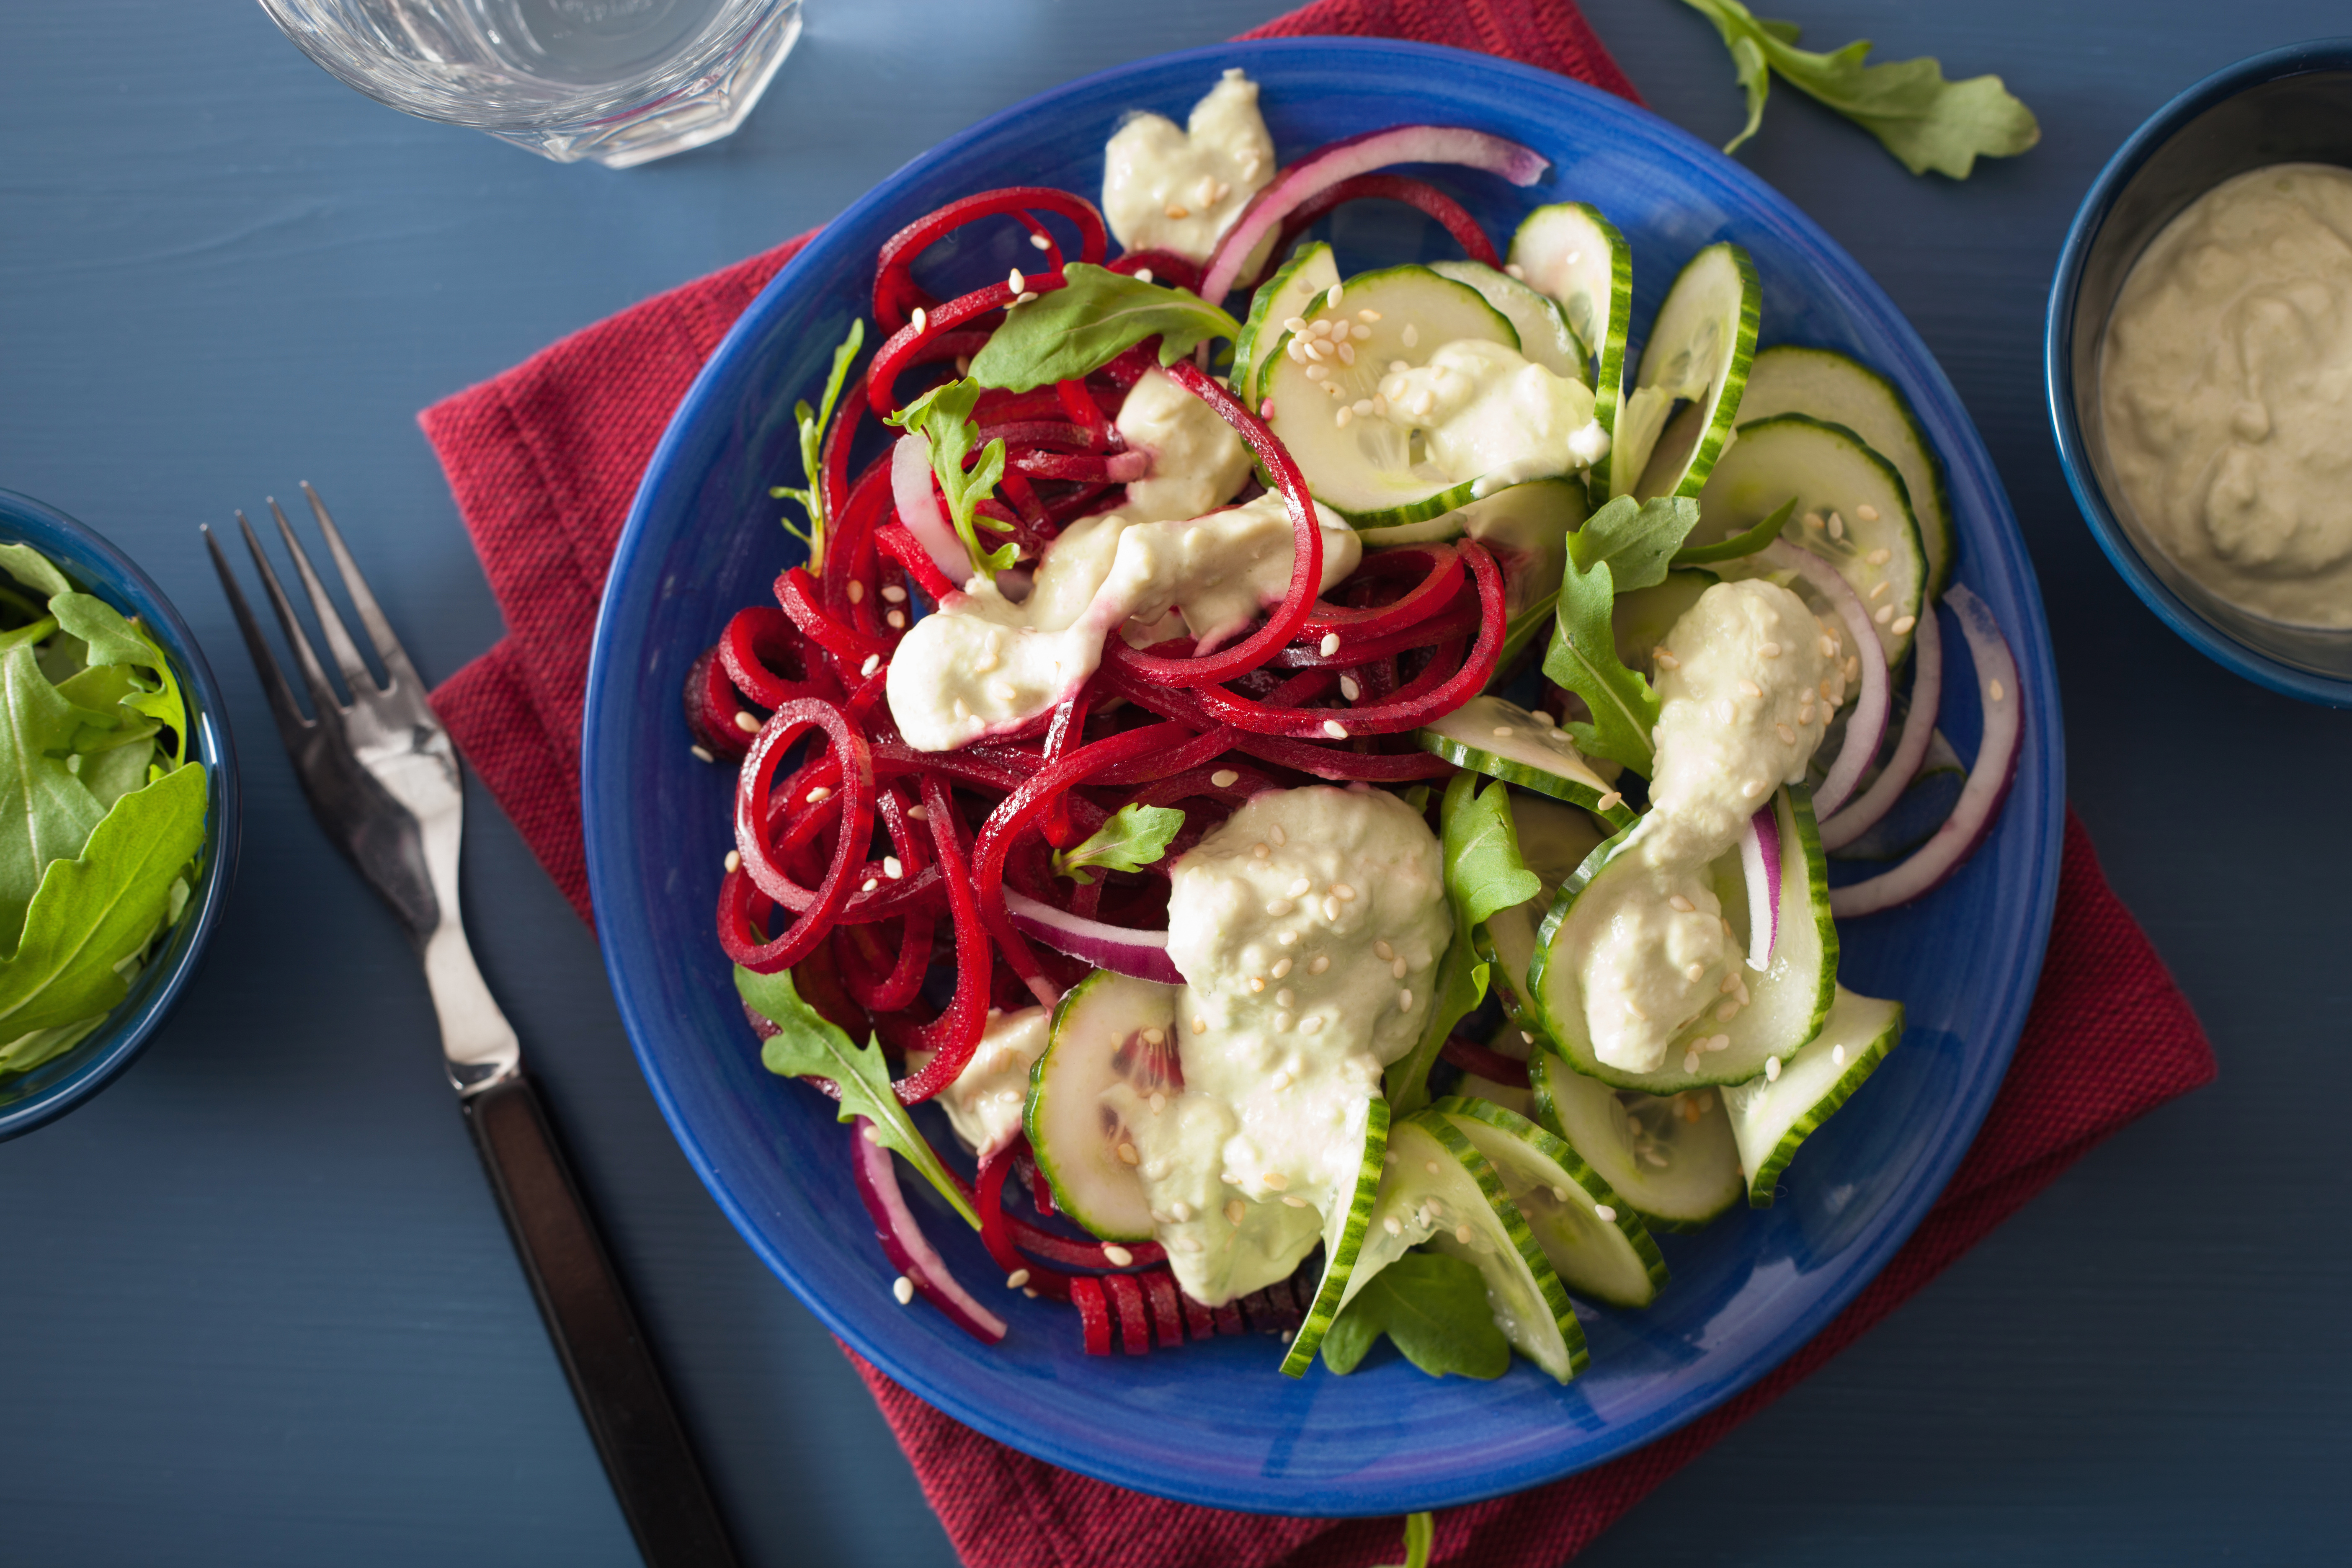 Beetroot and Cucumber Salad with Avocado Yoghurt Dressing